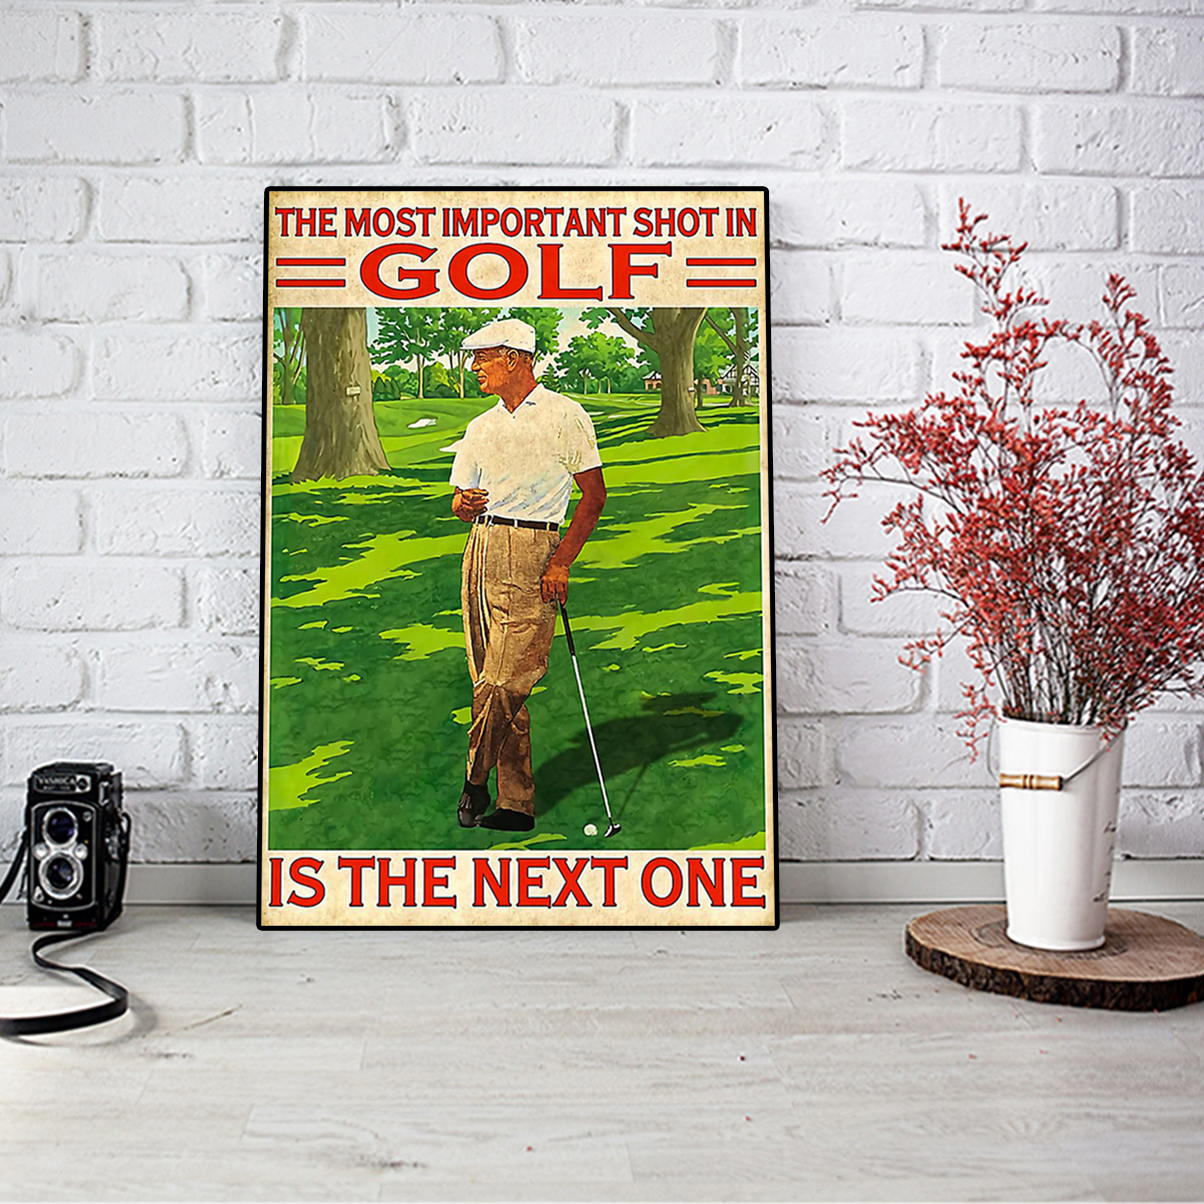 The most important shot in golf is the next one poster A3